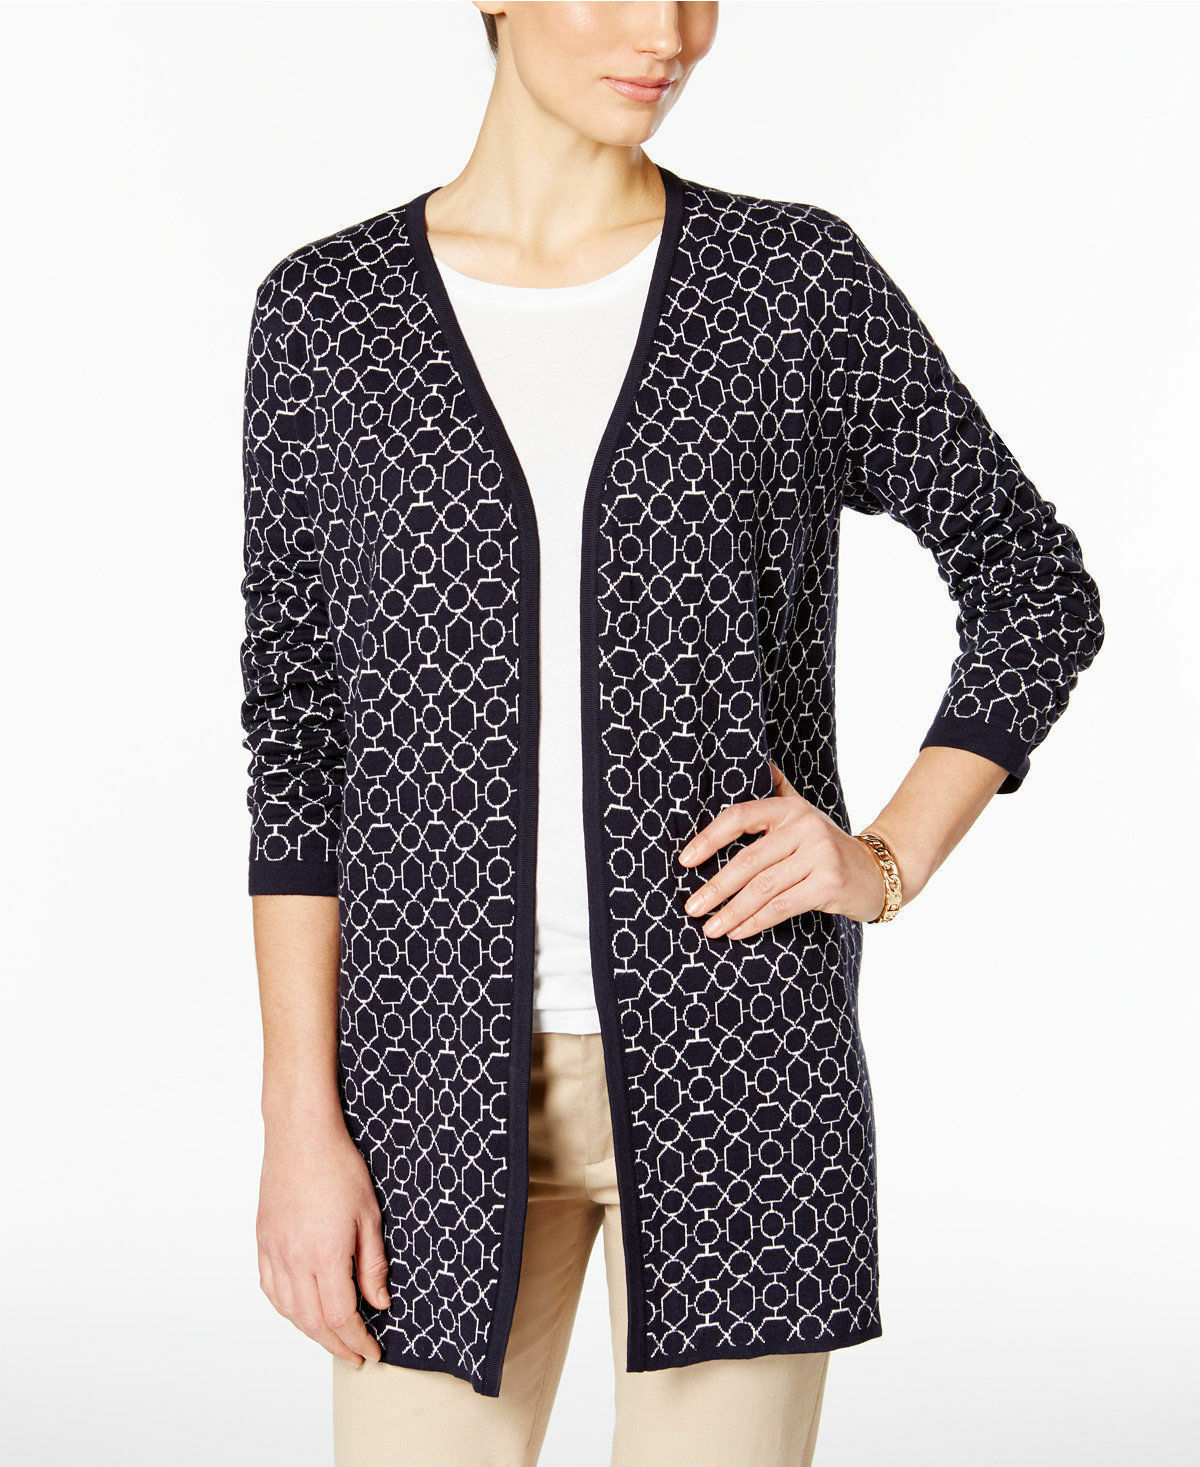 Charter Club 9855 Size Small S Womens Navy Printed Cardigan ...